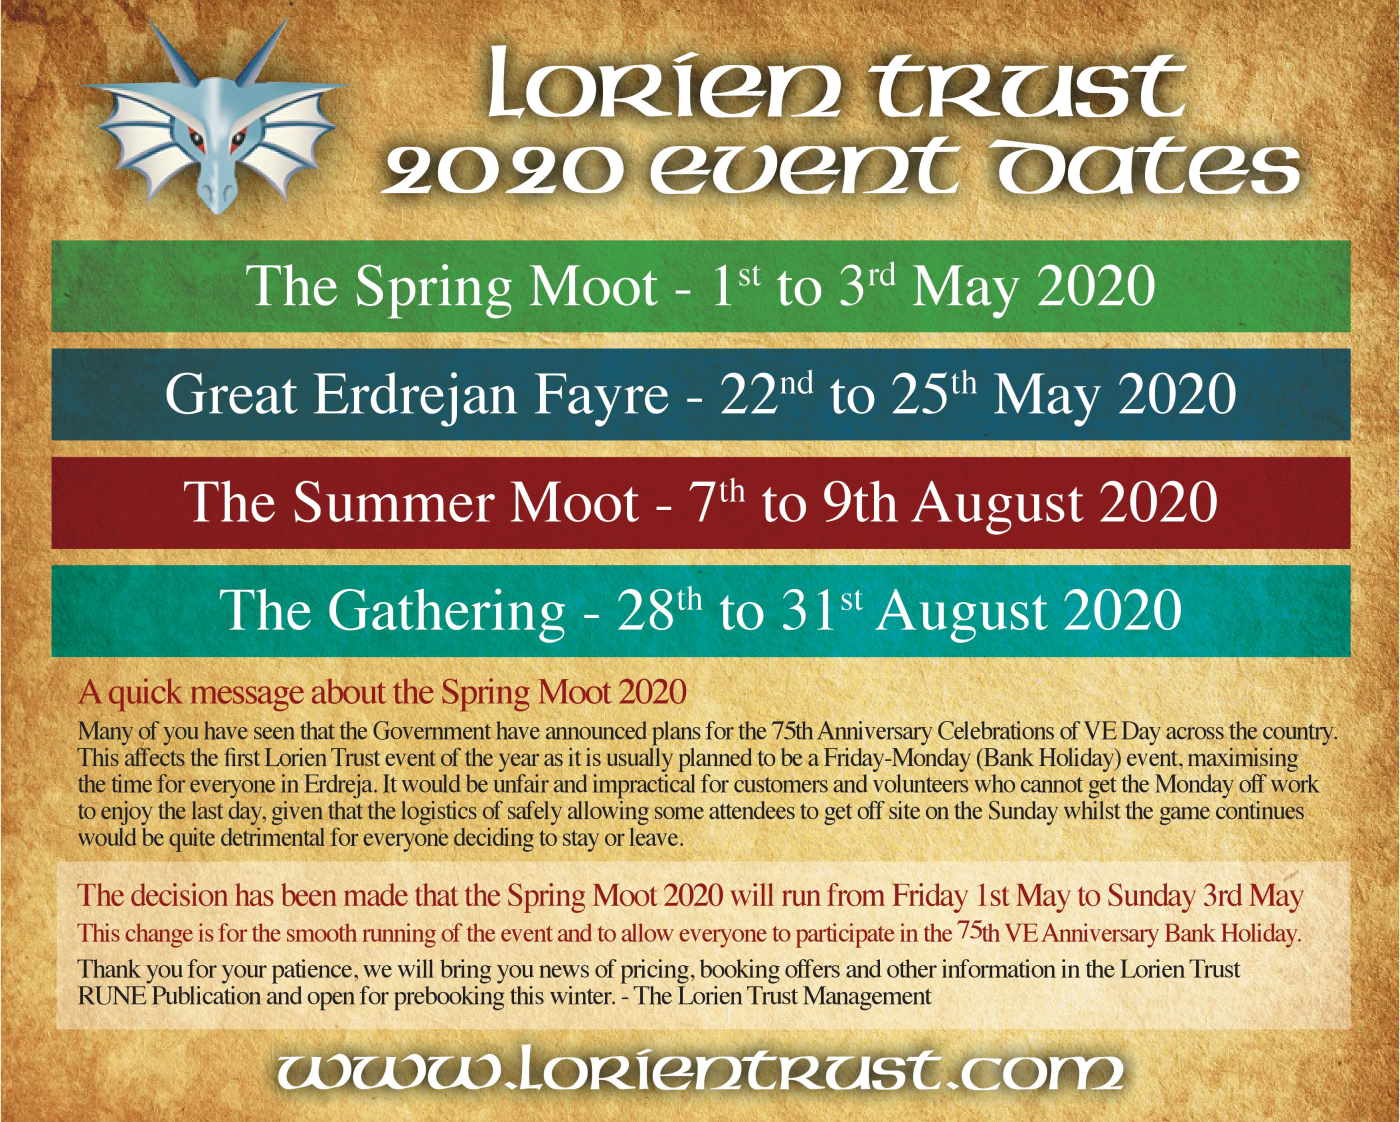 Lorien Trust 2020 Event Dates